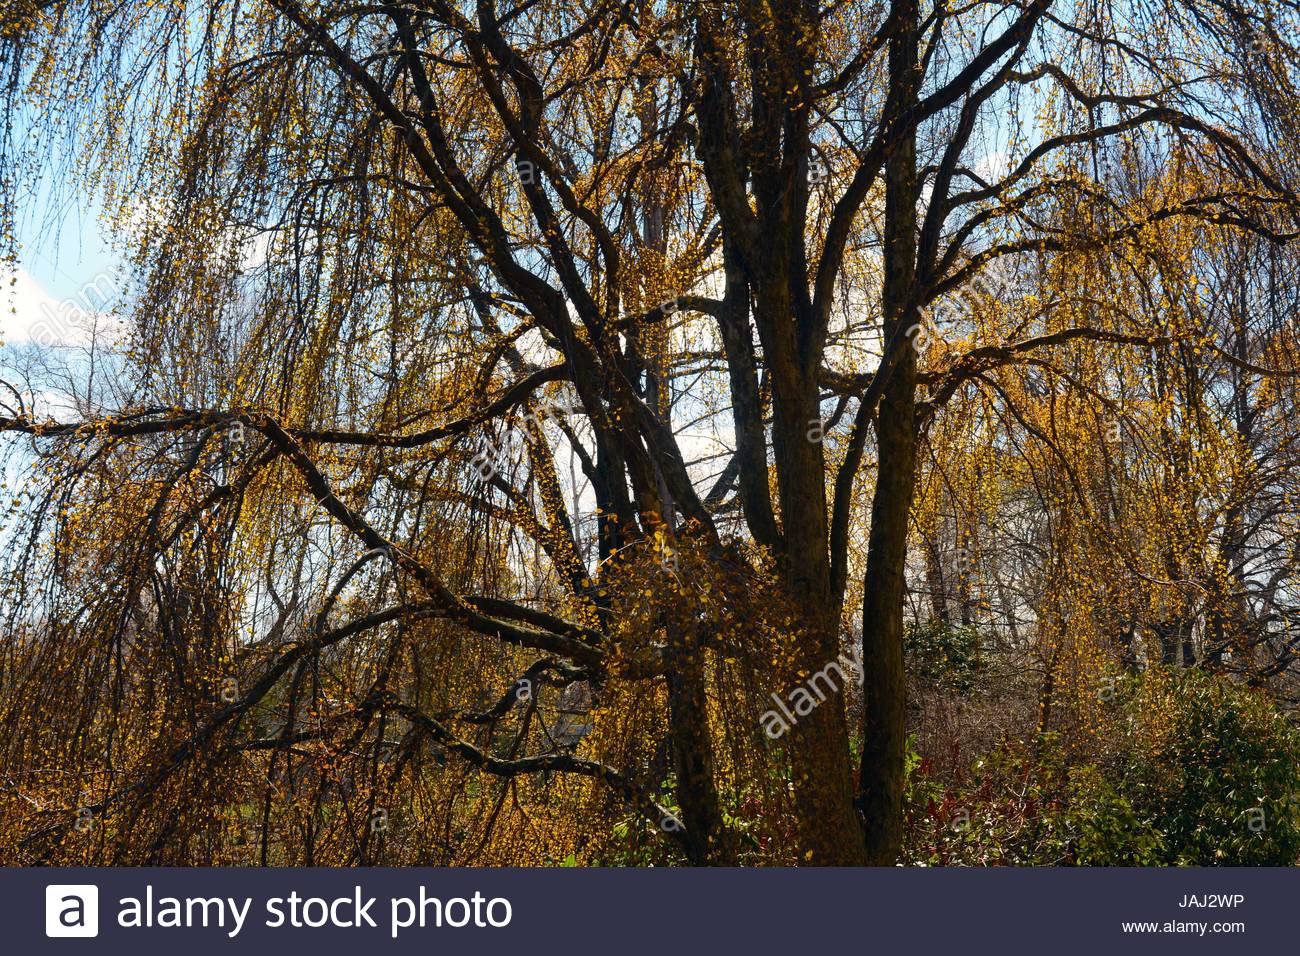 A weeping Katsura tree leafing out in spring. - Stock Image